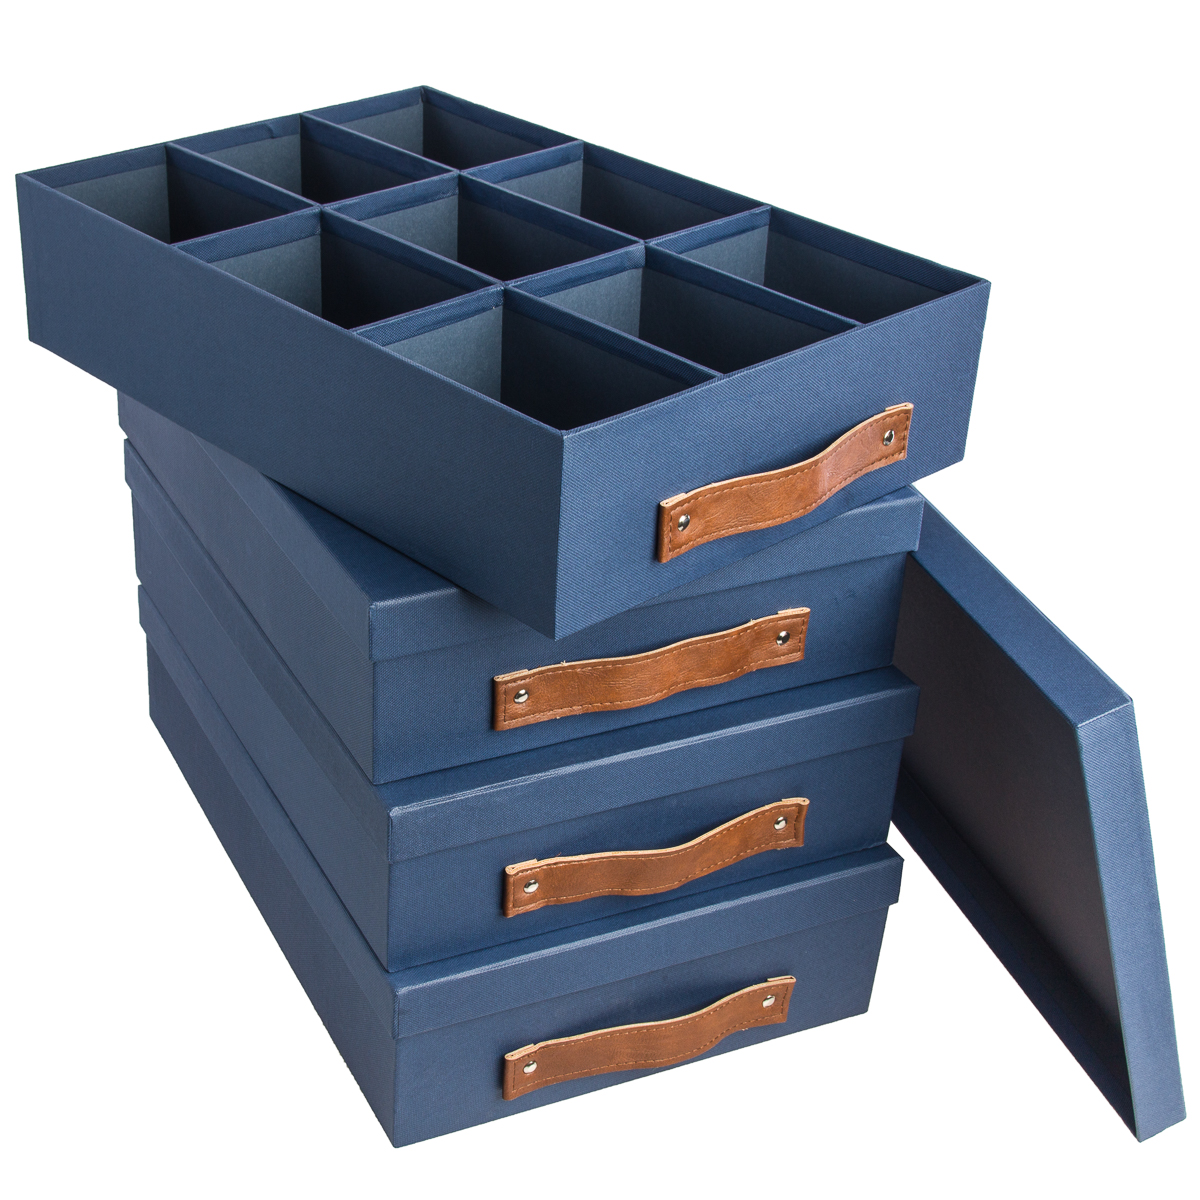 4 Pack 17x12 Canvas Storage Box Storage Containers Set with Lids